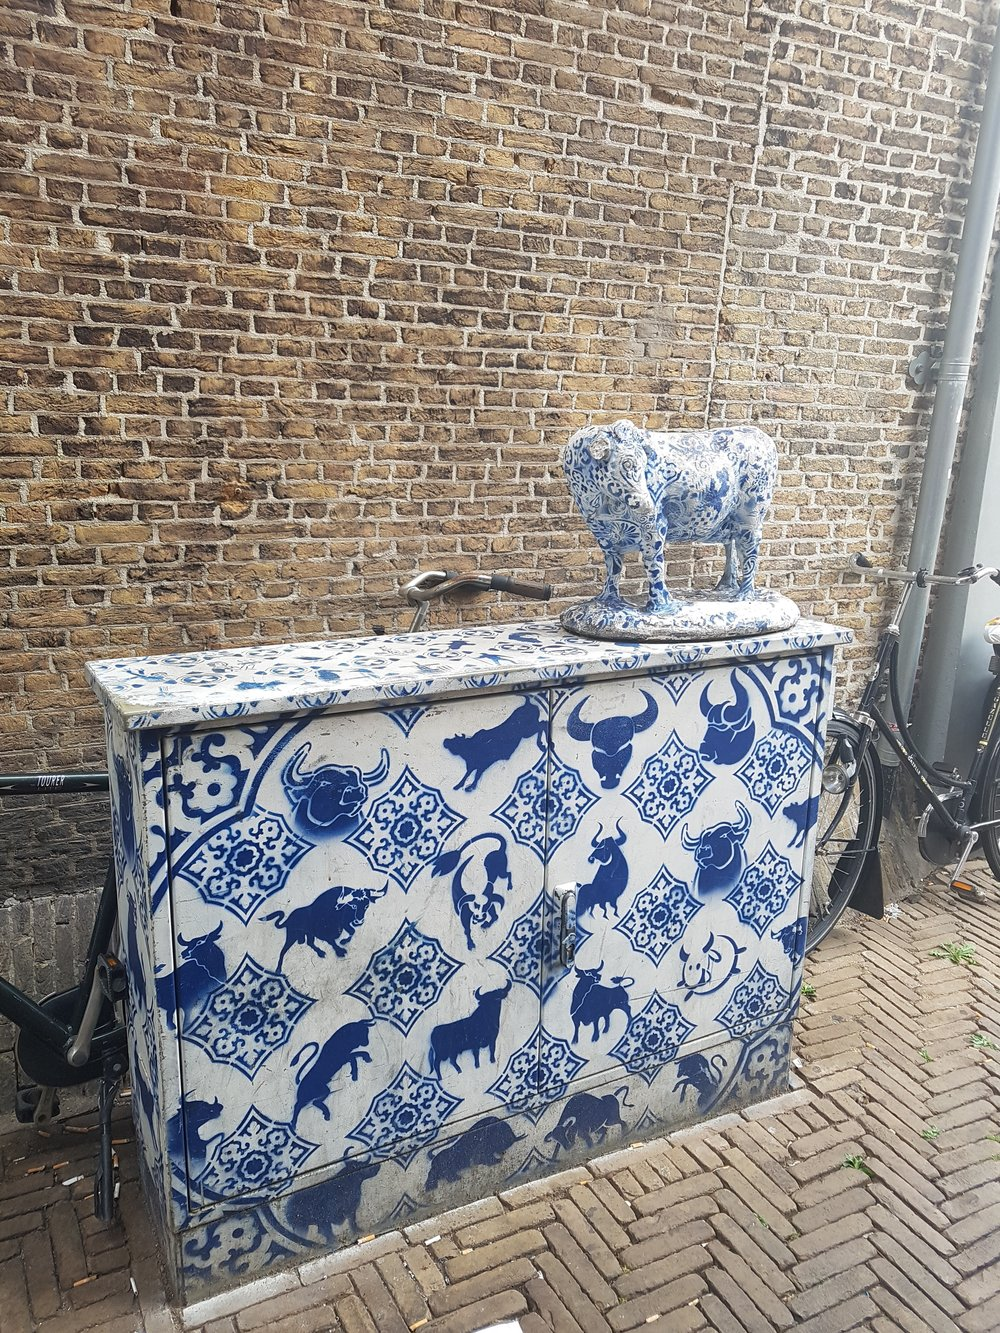 blue and white streets in delft